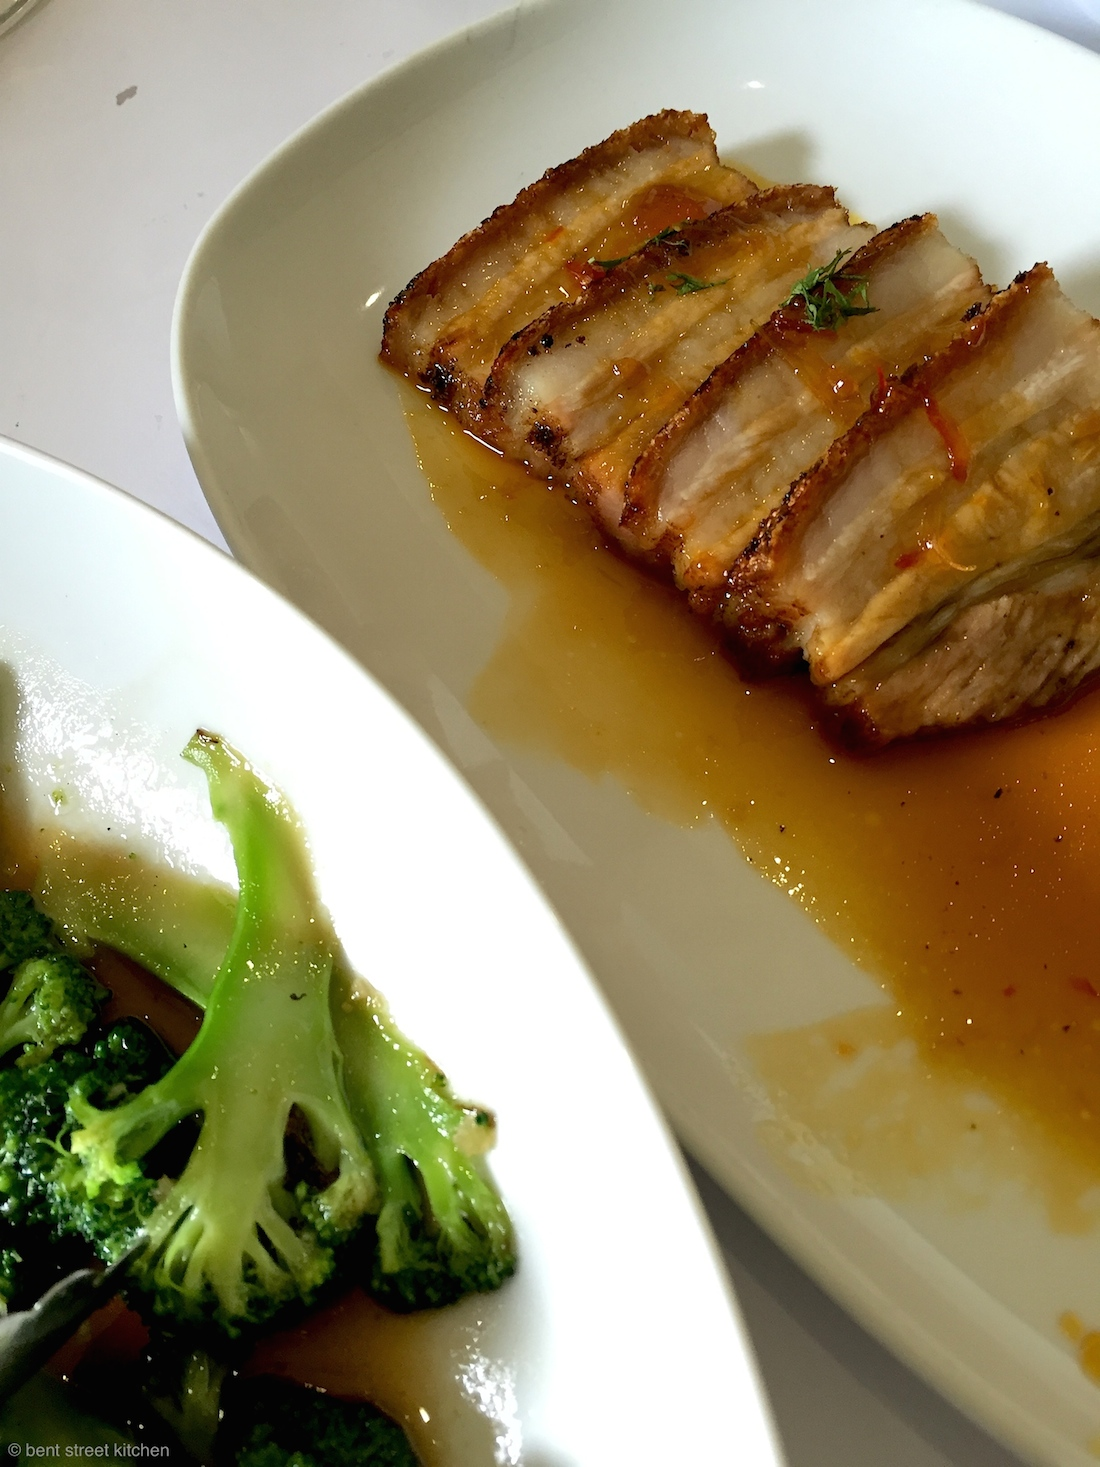 Barossa Hampshire pork belly with ginger and orange sauce and stir-fried seasonal vegetables with garlic & fish sauce